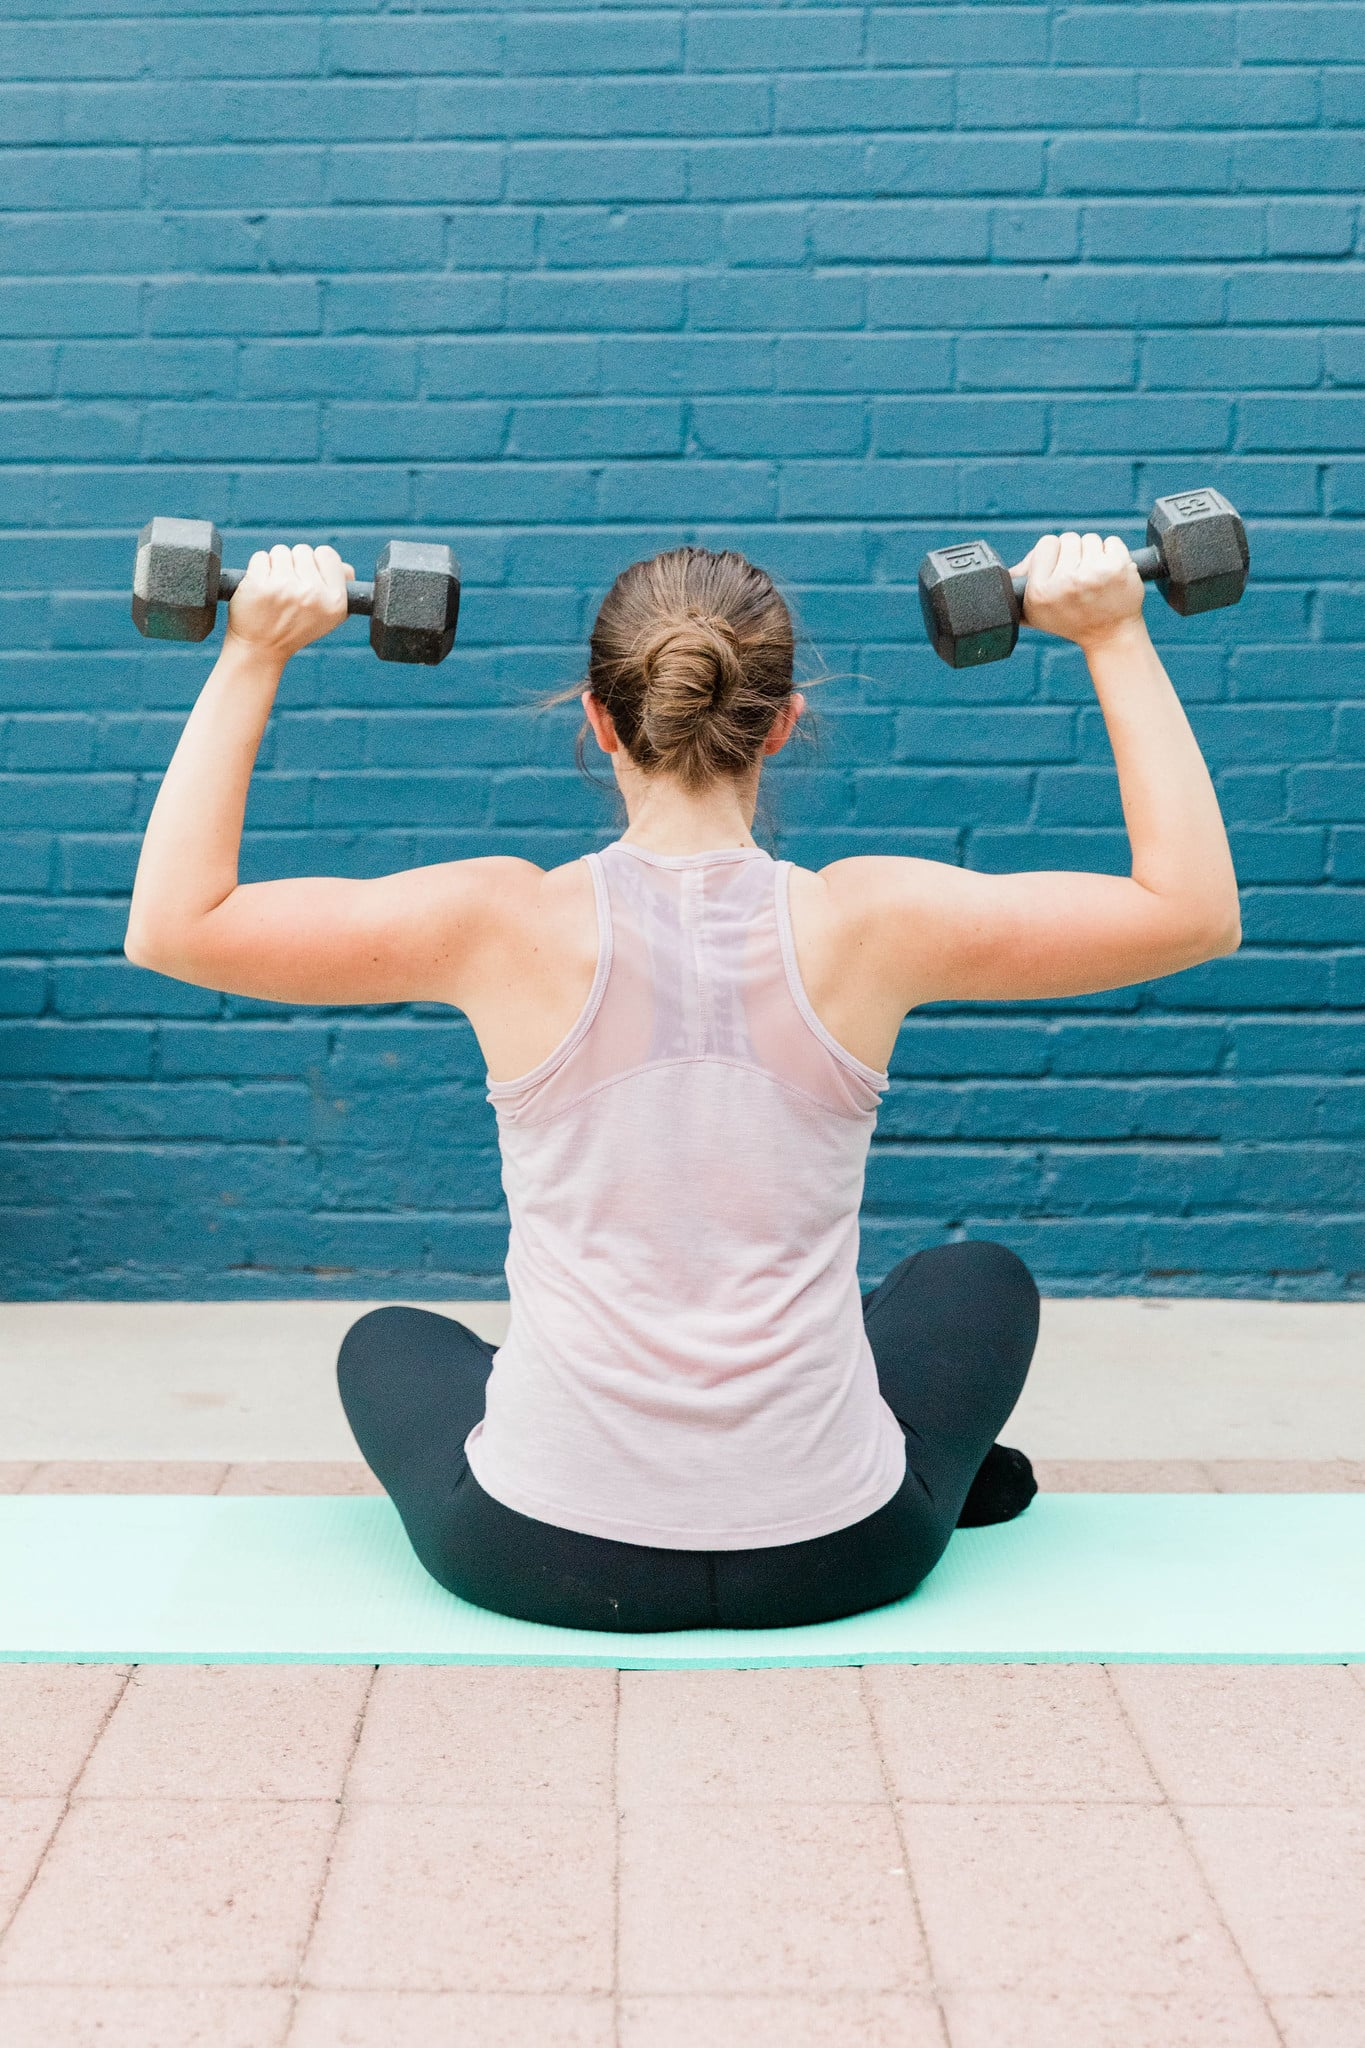 Using Exercise to Fight Addiction